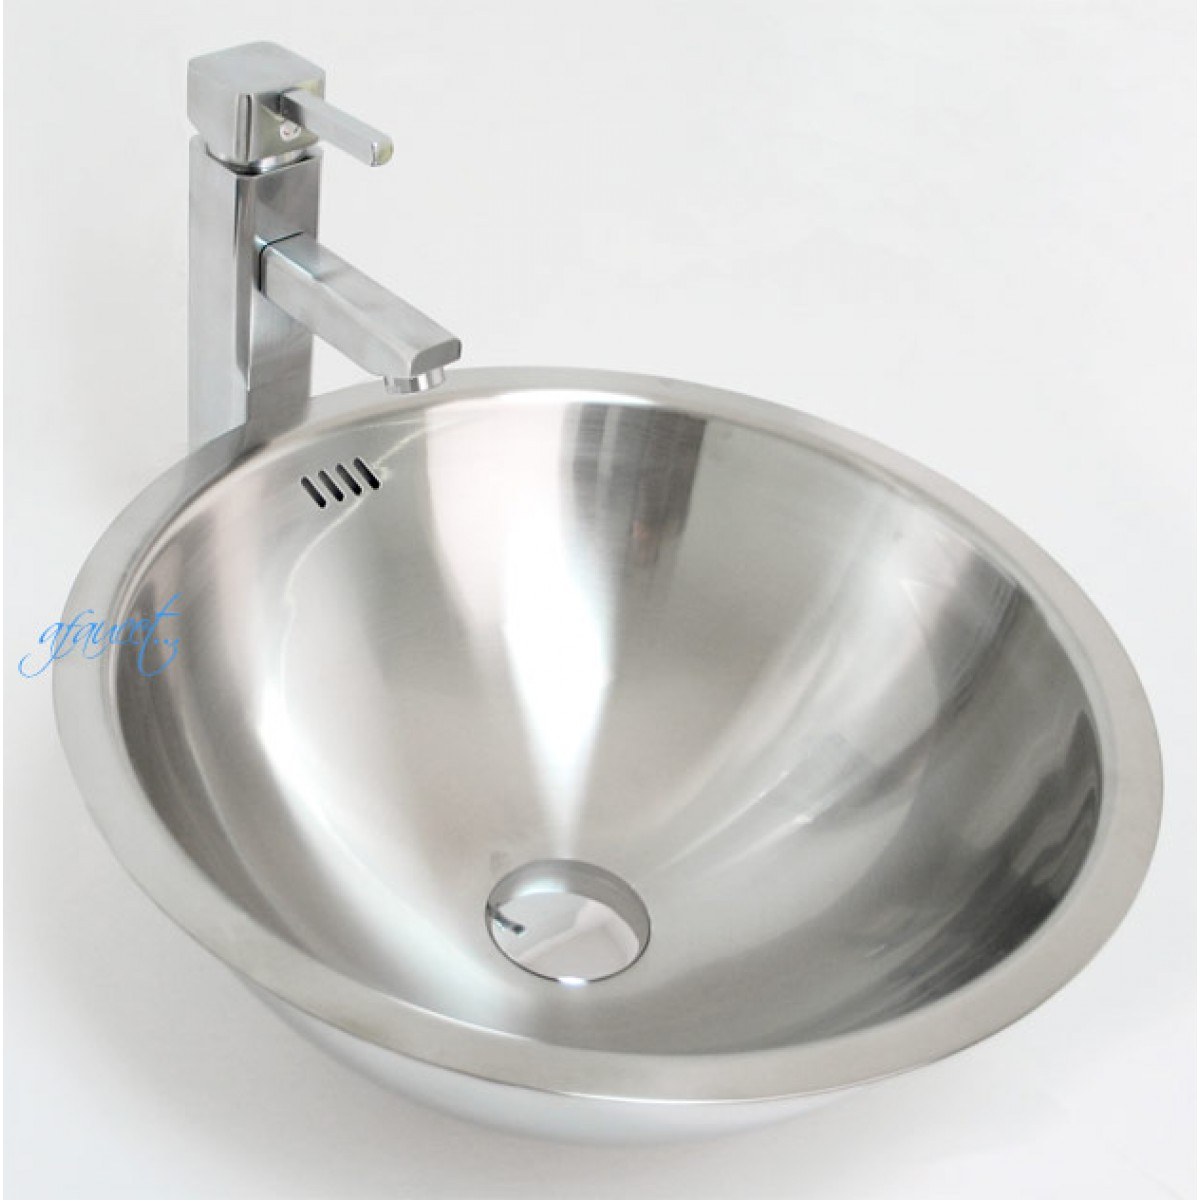 Genial Round 18 Gauge Stainless Steel Drop In / Undermount / Countertop Bathroom Vessel  Sink   16 1/4 X 7 Inch